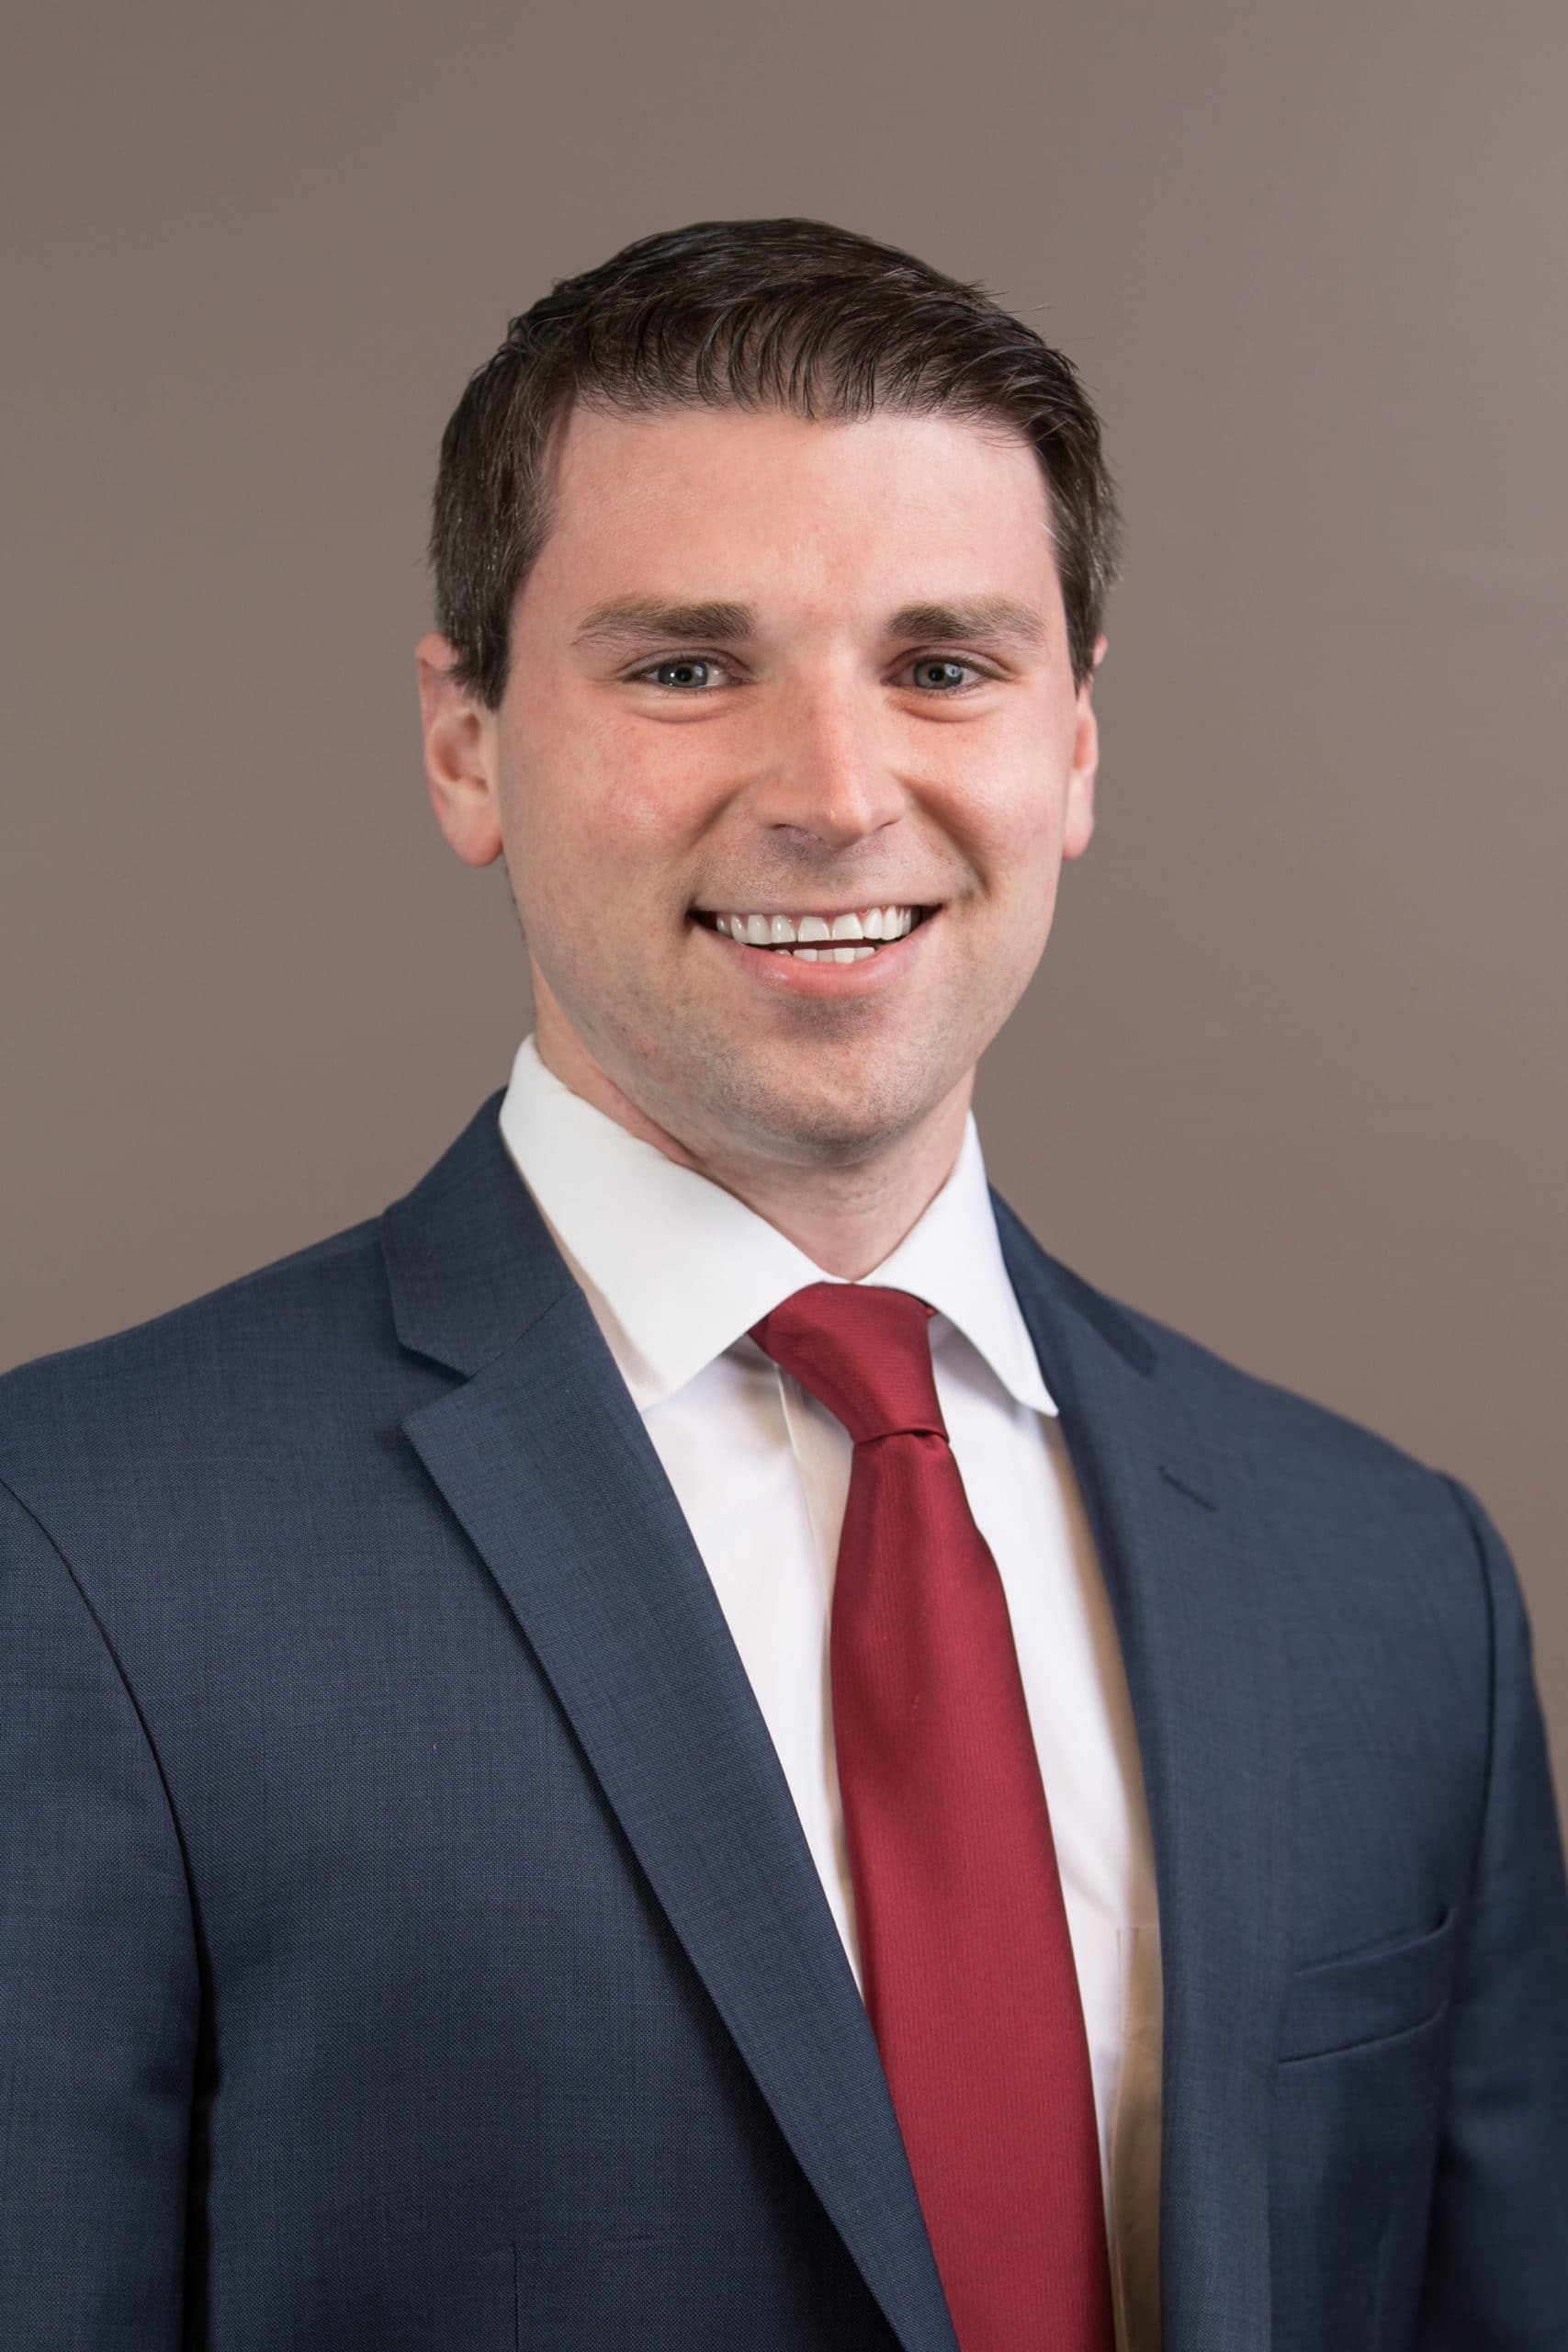 Brian Budic to Present on Family and Personal Injury Law